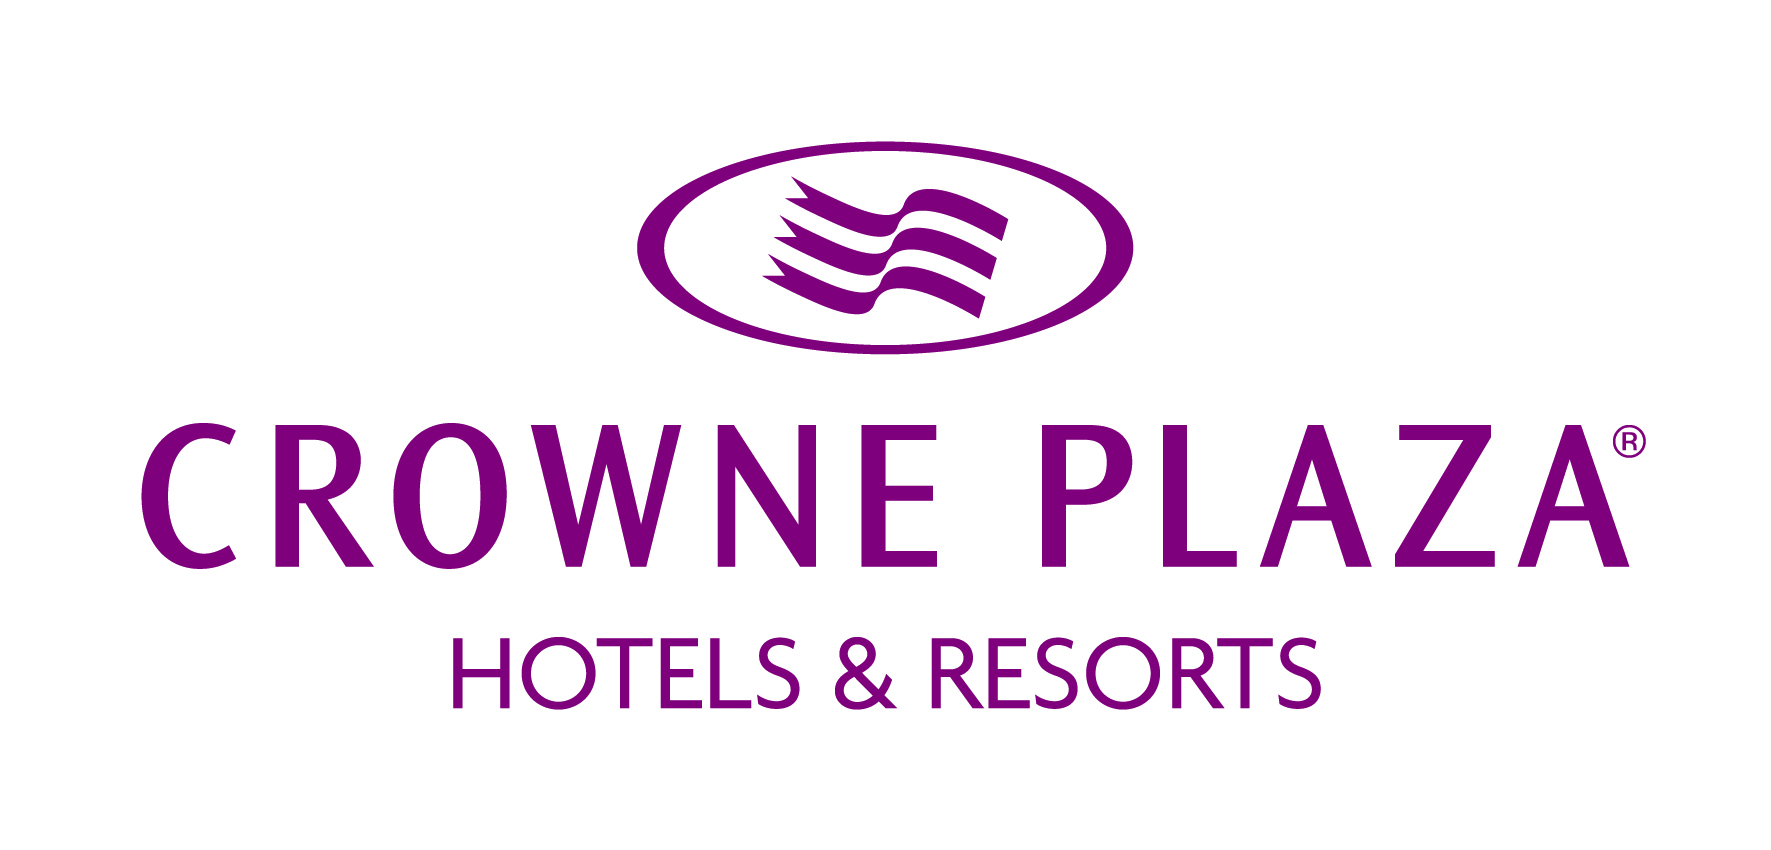 Crowne Plaza Hotels &amp; Resorts